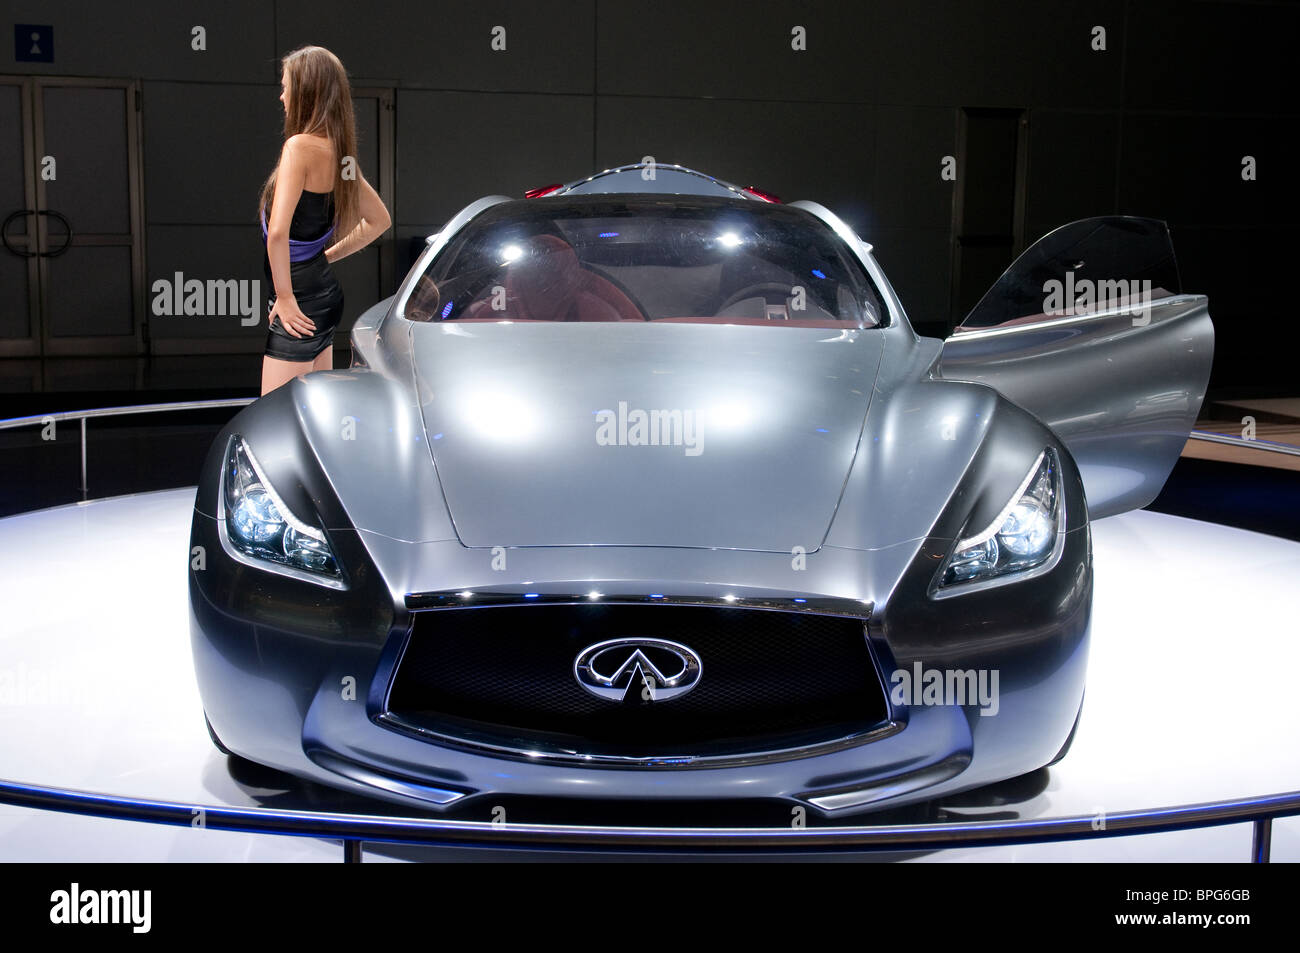 MOSCOW, RUSSIA - August 26: Moscow International Automobile Salon 2010. Infiniti Essence Concept car - Stock Image